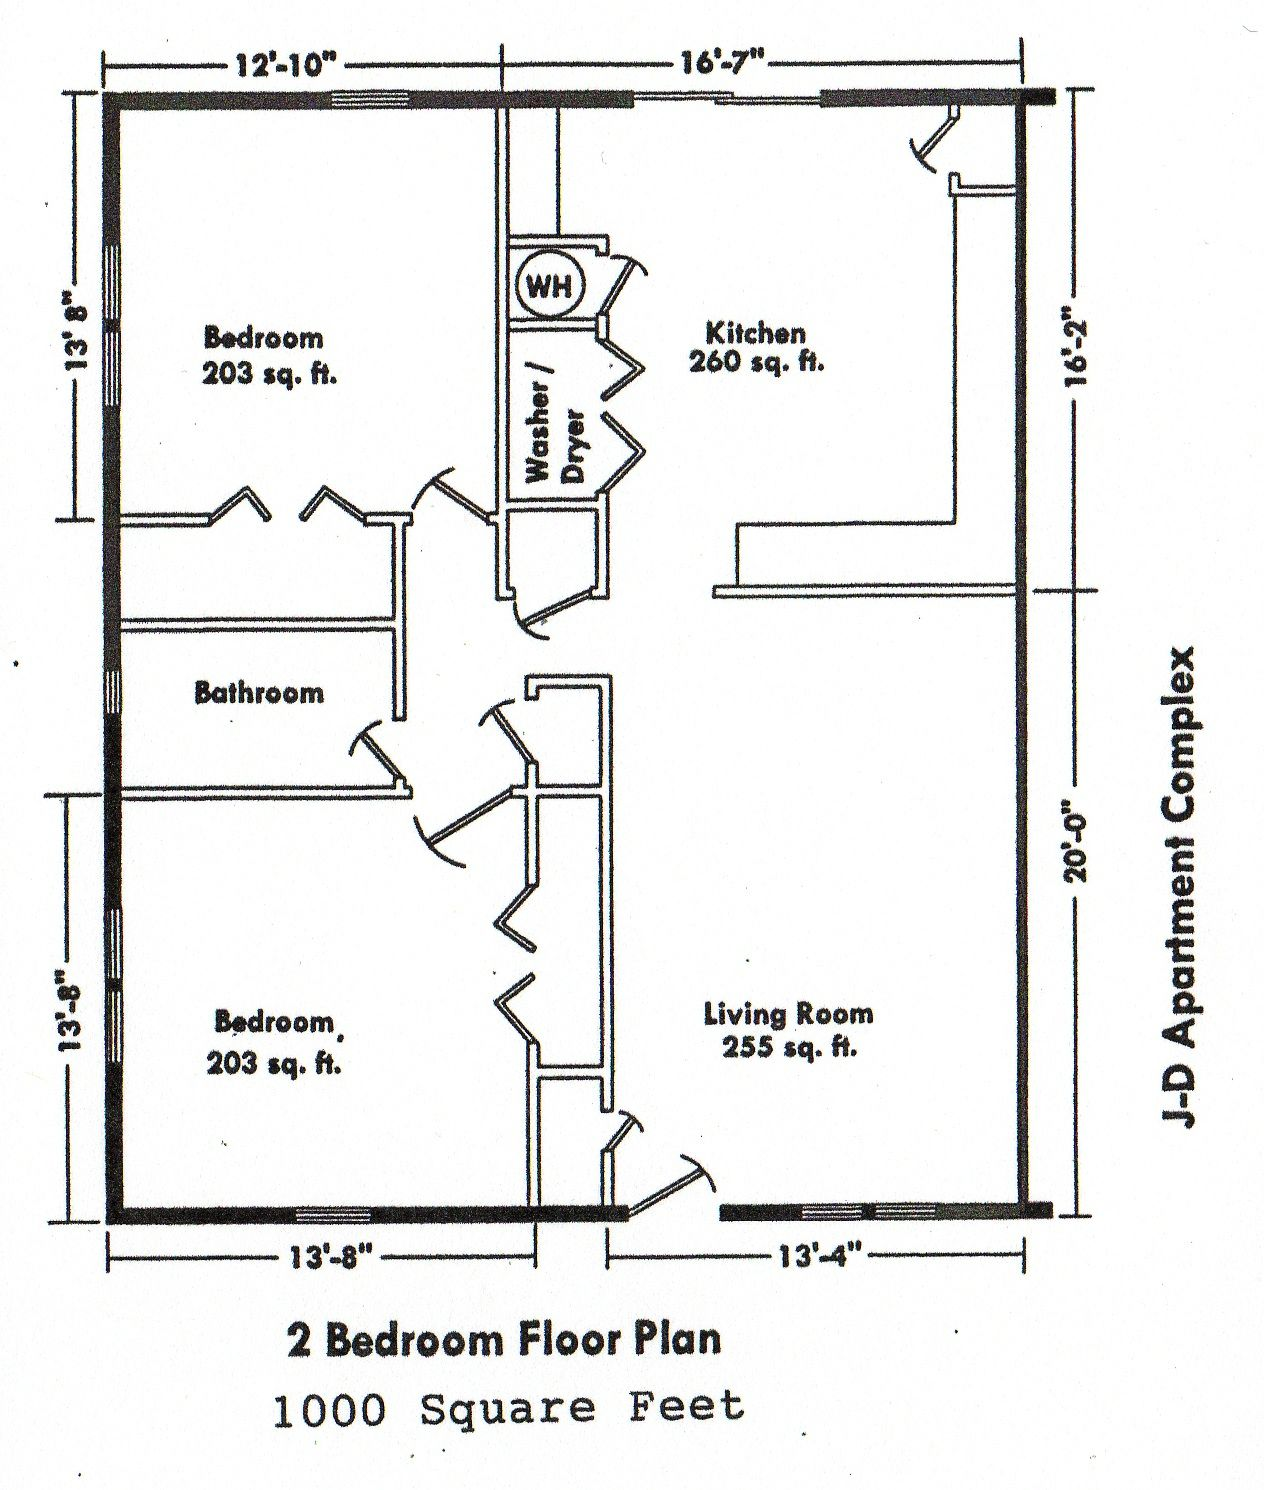 Small house floor plans 2 bedrooms master bedroom suite home addition plans house plans Master bedroom suite plans